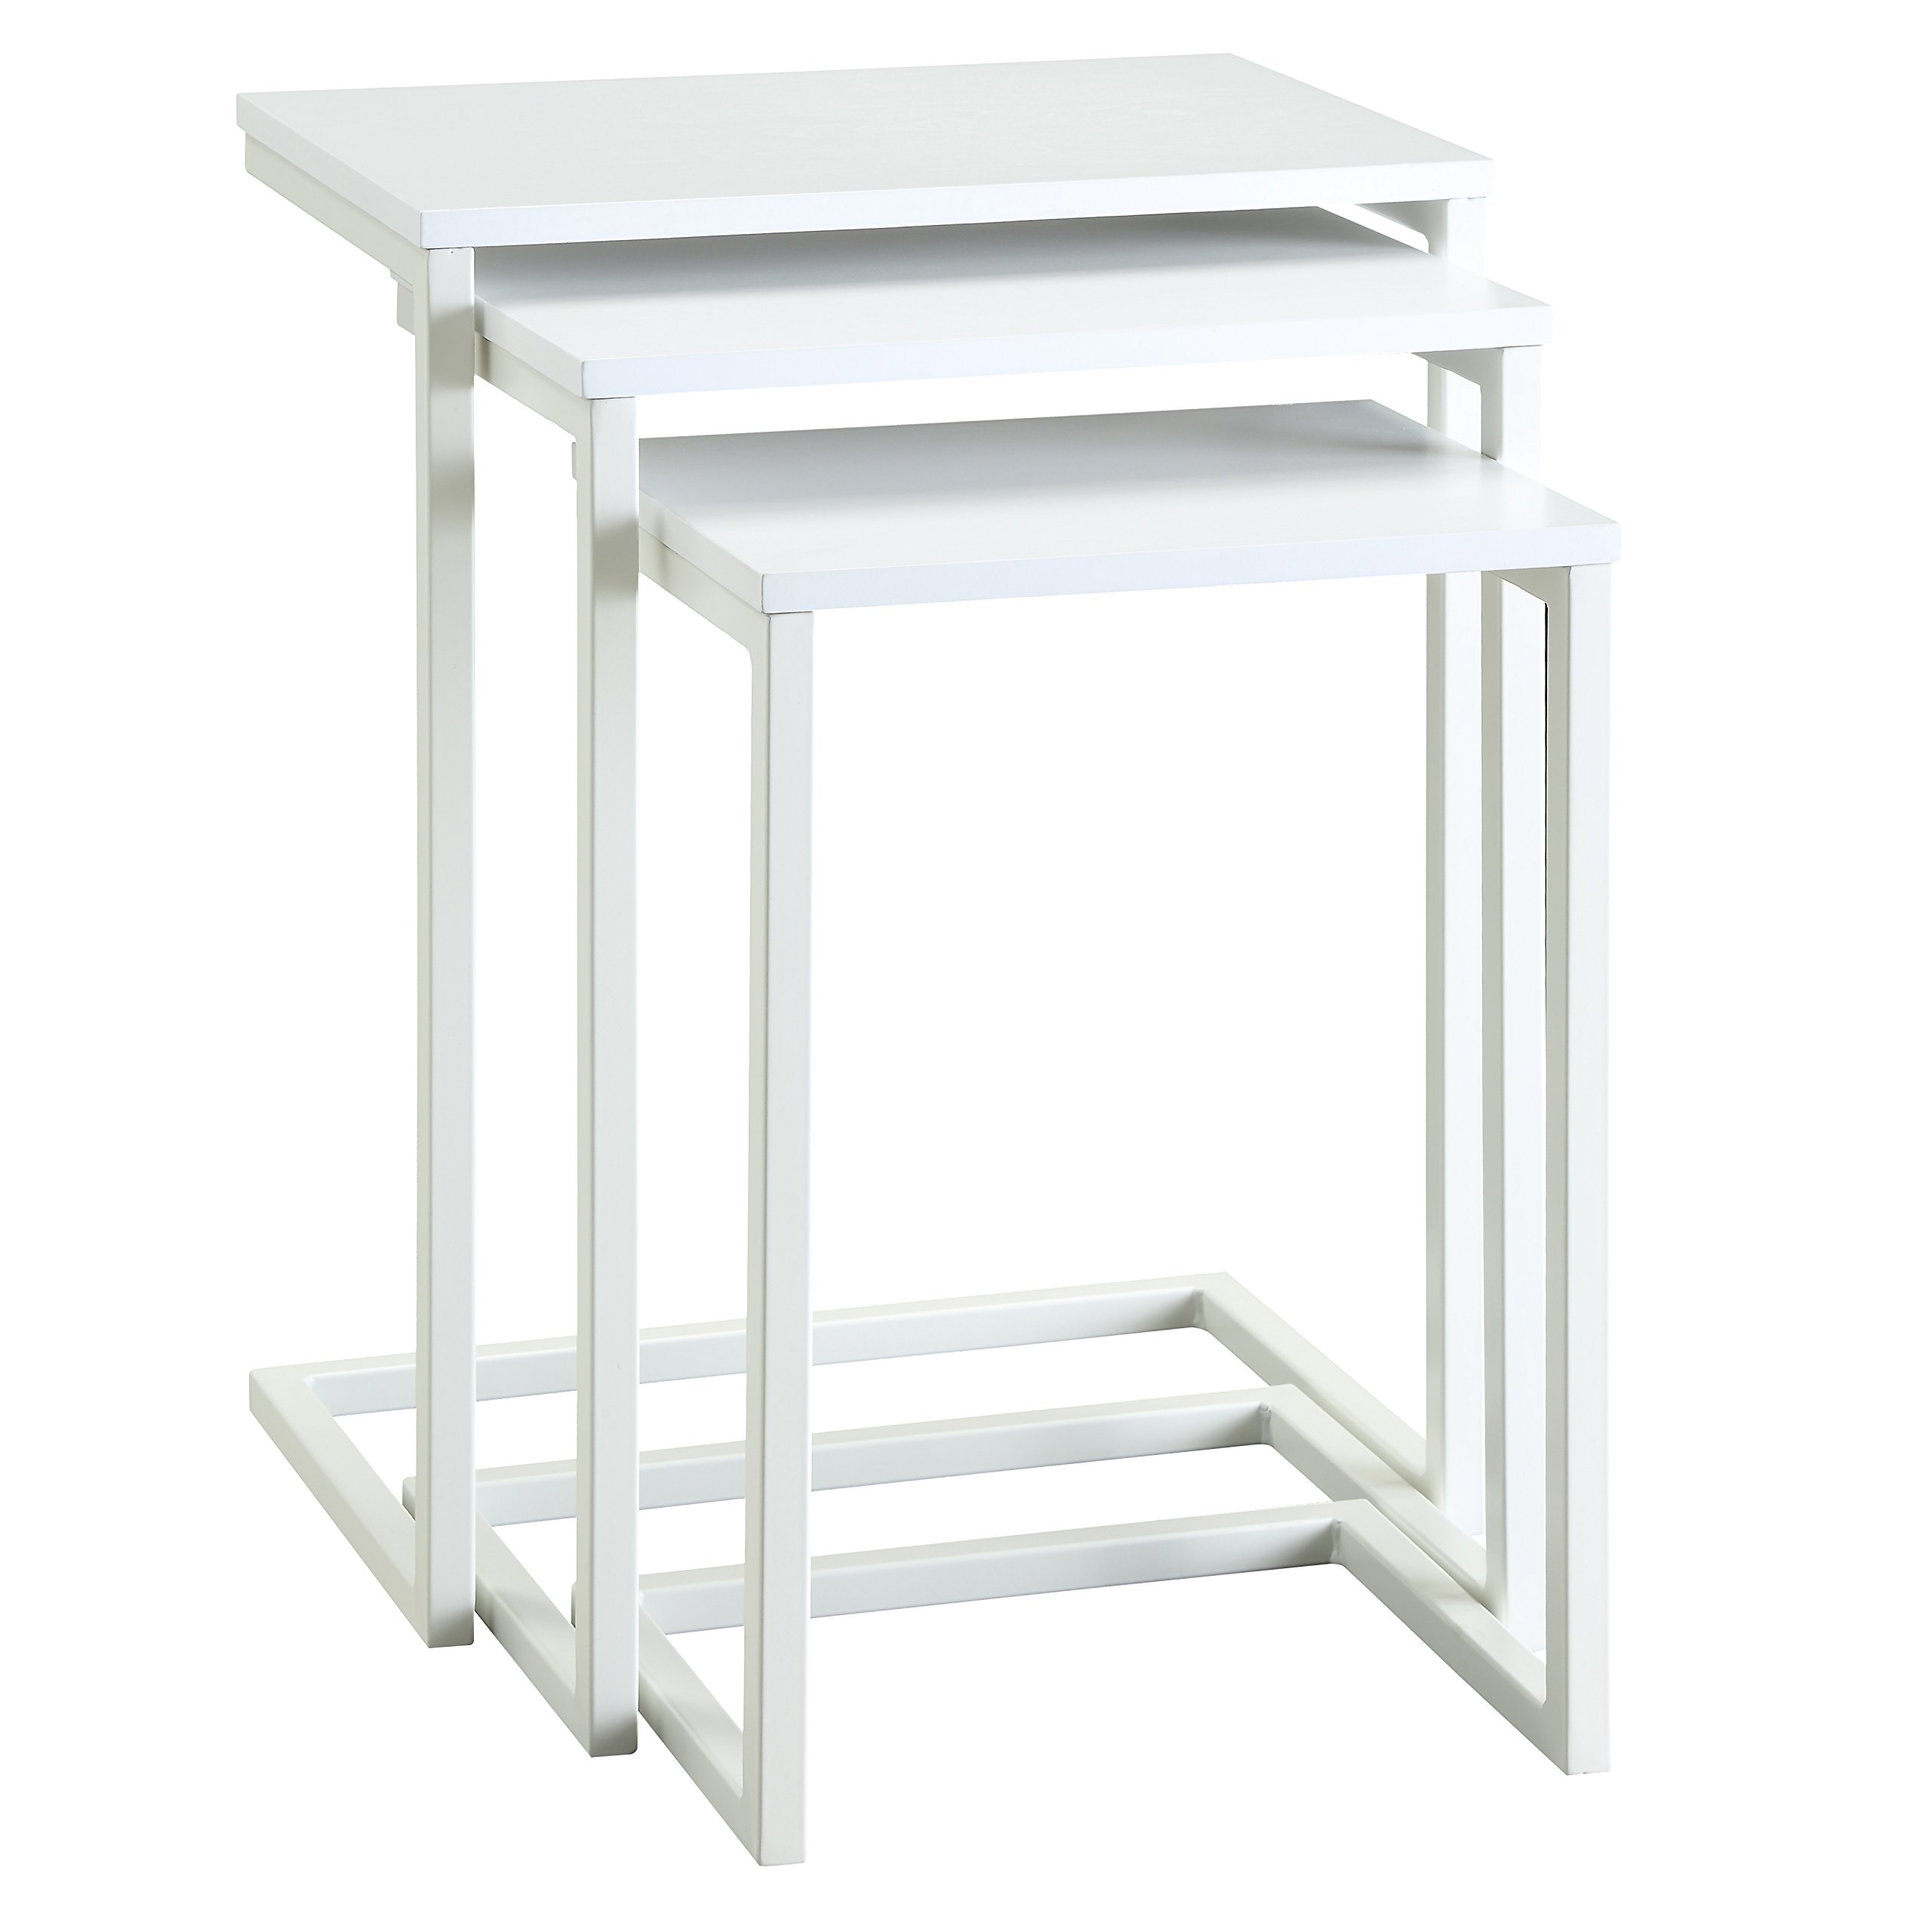 Carolina Chair and Table Madison Nesting Table Set, White by Carolina Chair & Table